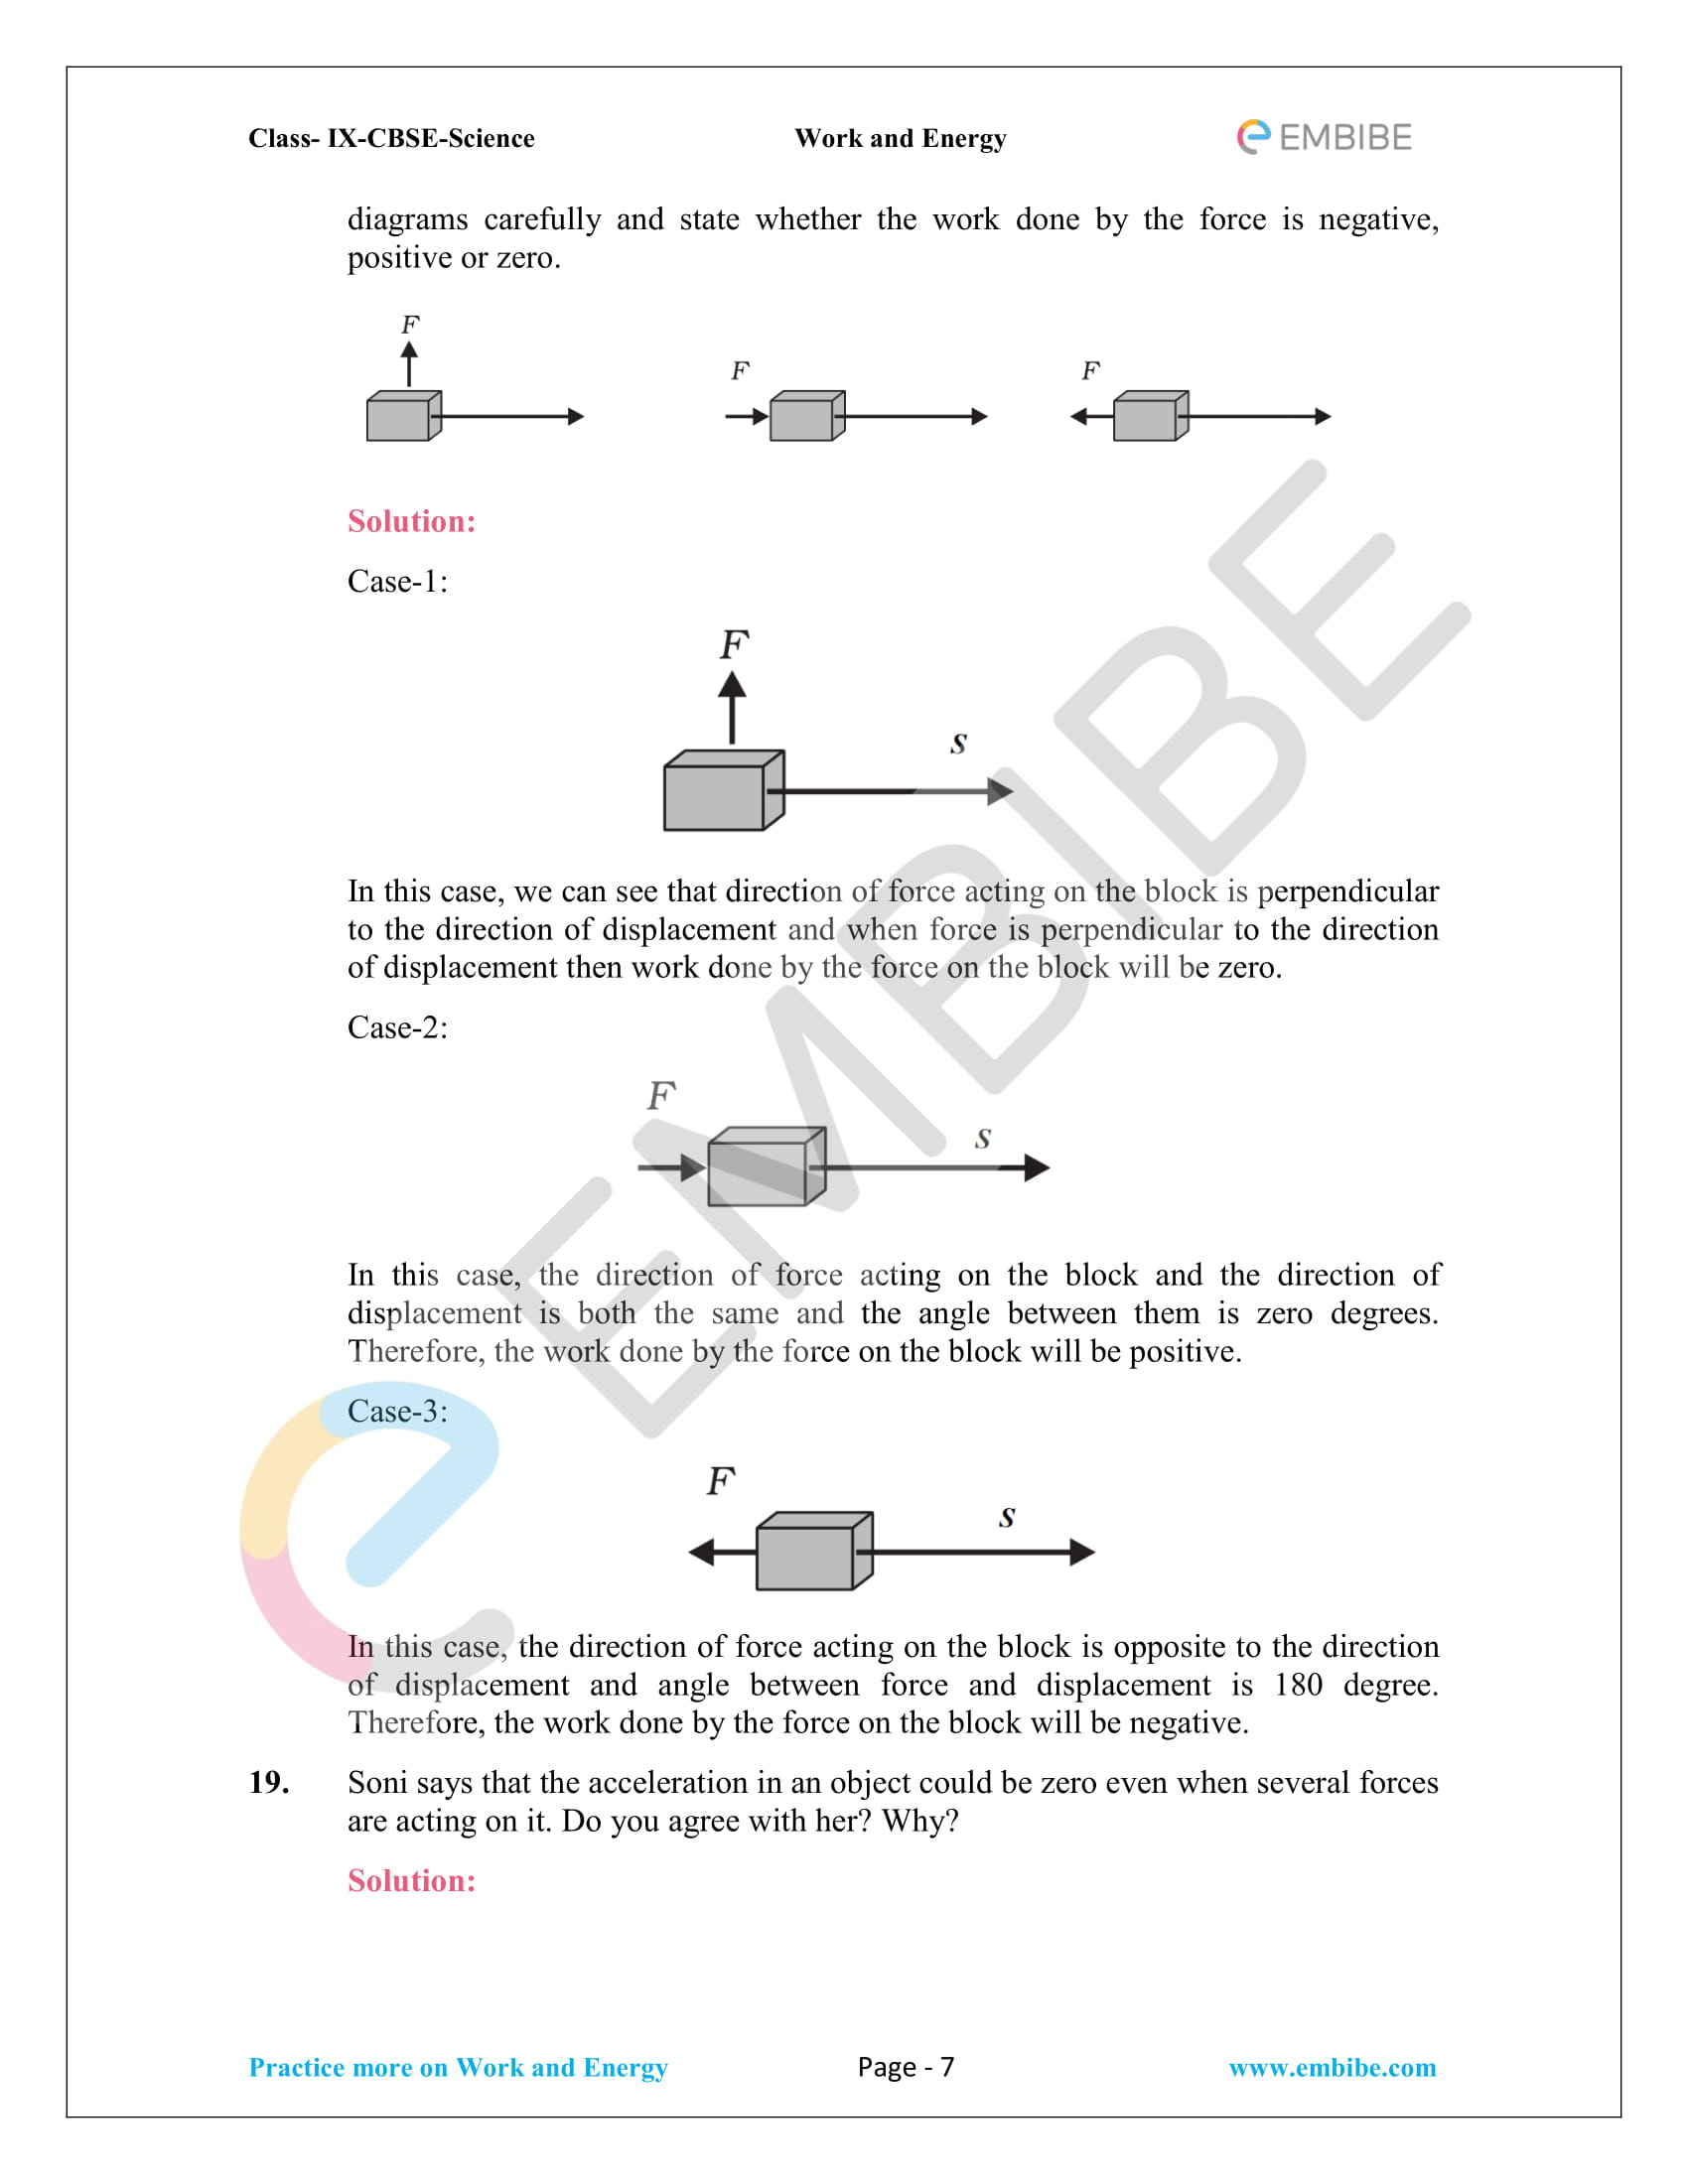 CBSE NCERT Solutions For Class 9 Science Chapter 11 – Work And Energy - 7